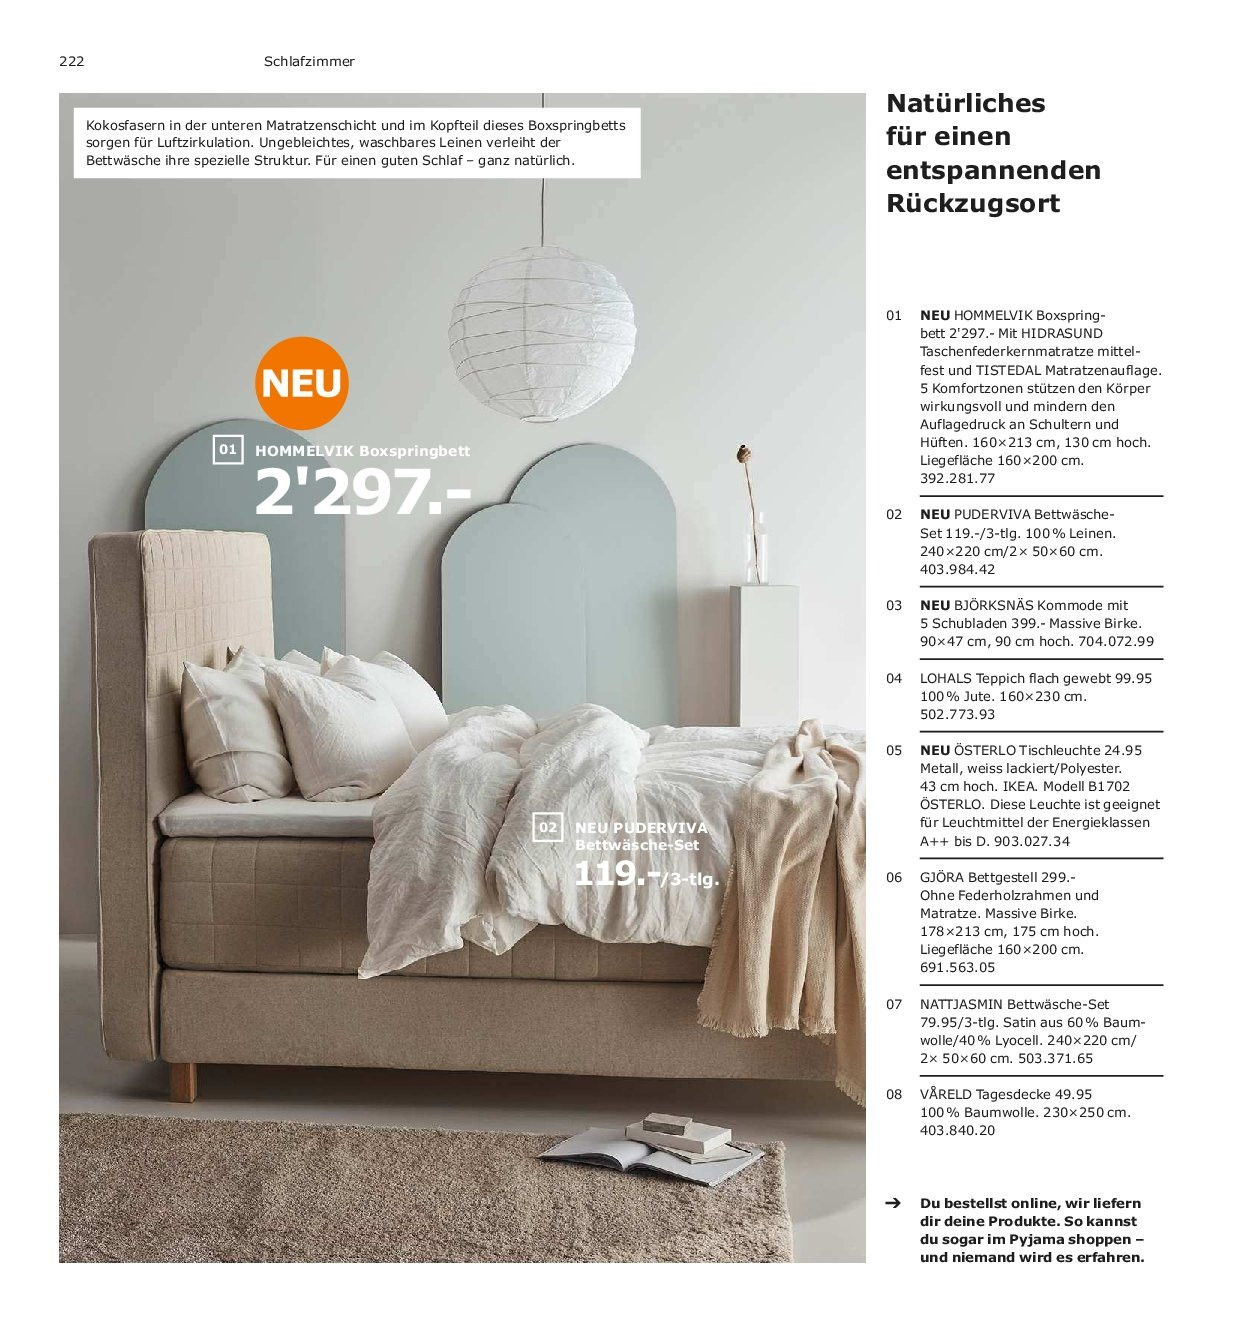 Tagesdecke Bett Design Catalogue Ikea 24 8 2018 30 6 2019 Rabatt Kompass Ch